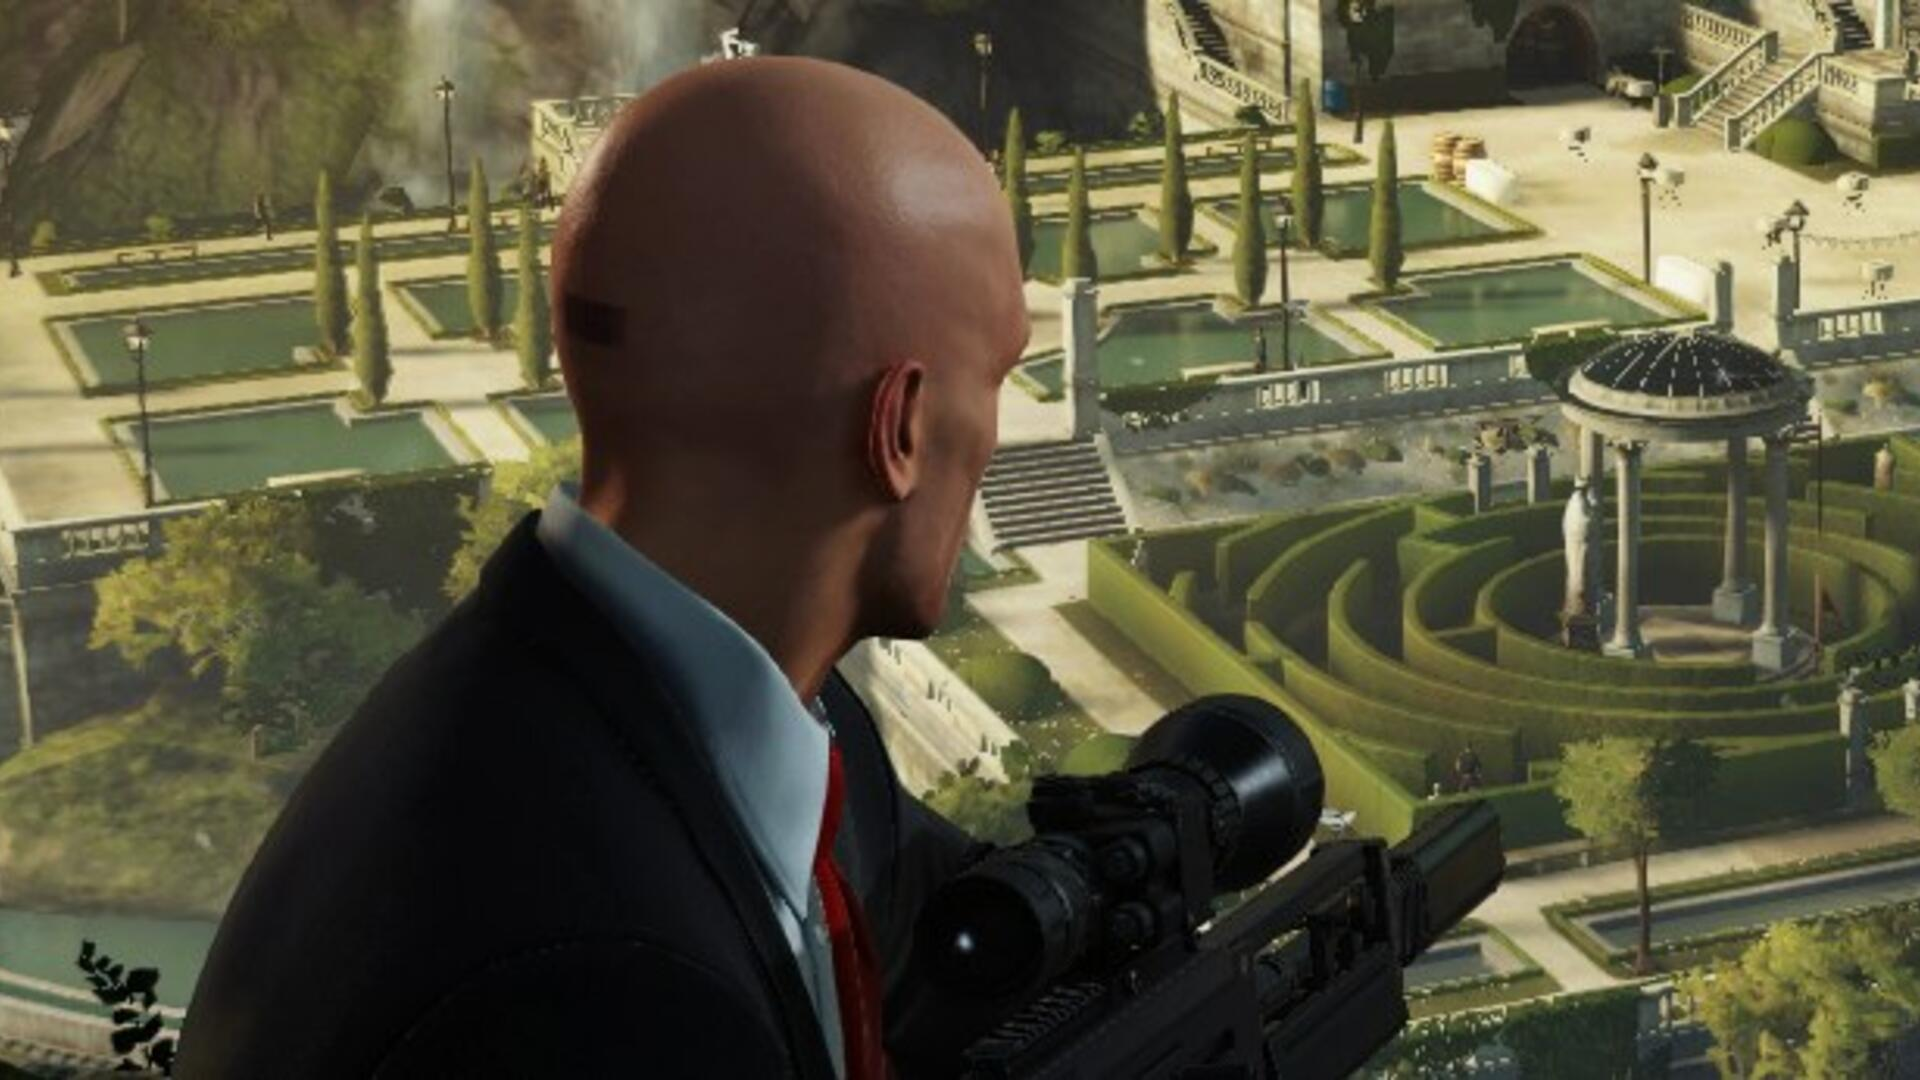 Hitman: Sniper Assassin Guide - How to Play Co-Op Online, How to Complete The Last Yardbird Mission - Hitman 2